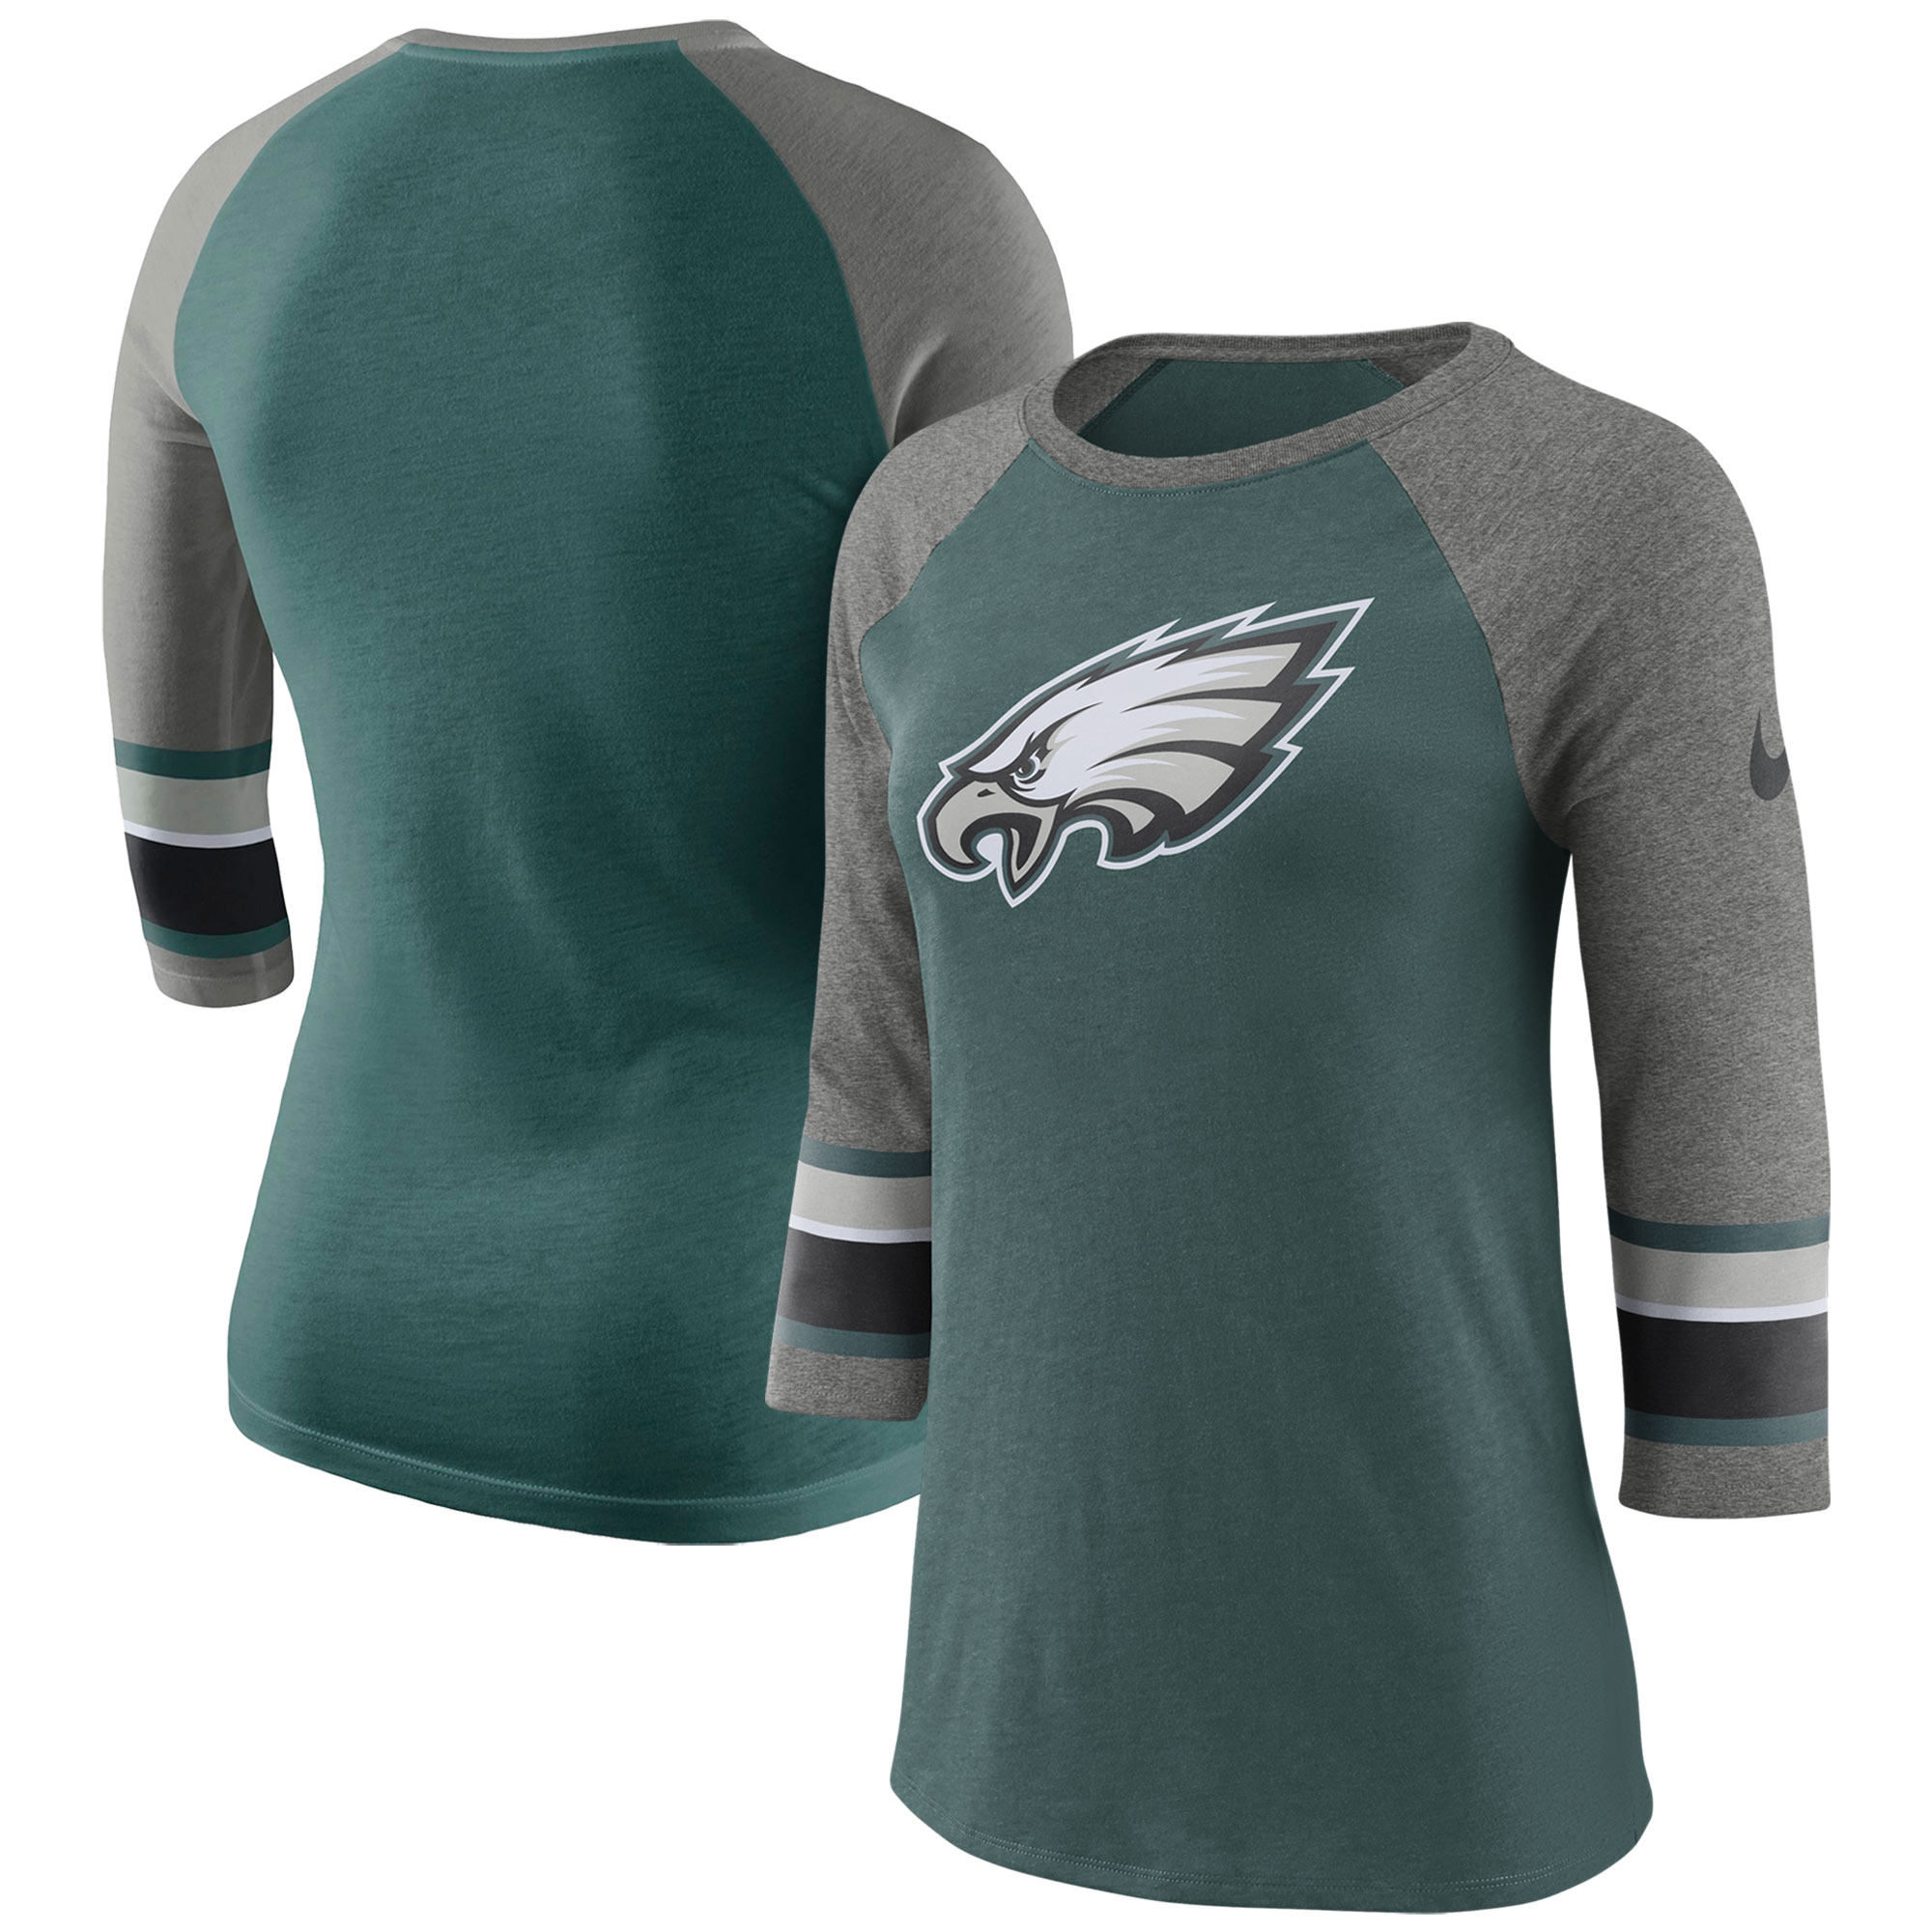 Philadelphia Eagles Nike Women's Stripe 3/4-Sleeve Raglan Tri-Blend T-Shirt - Midnight Green